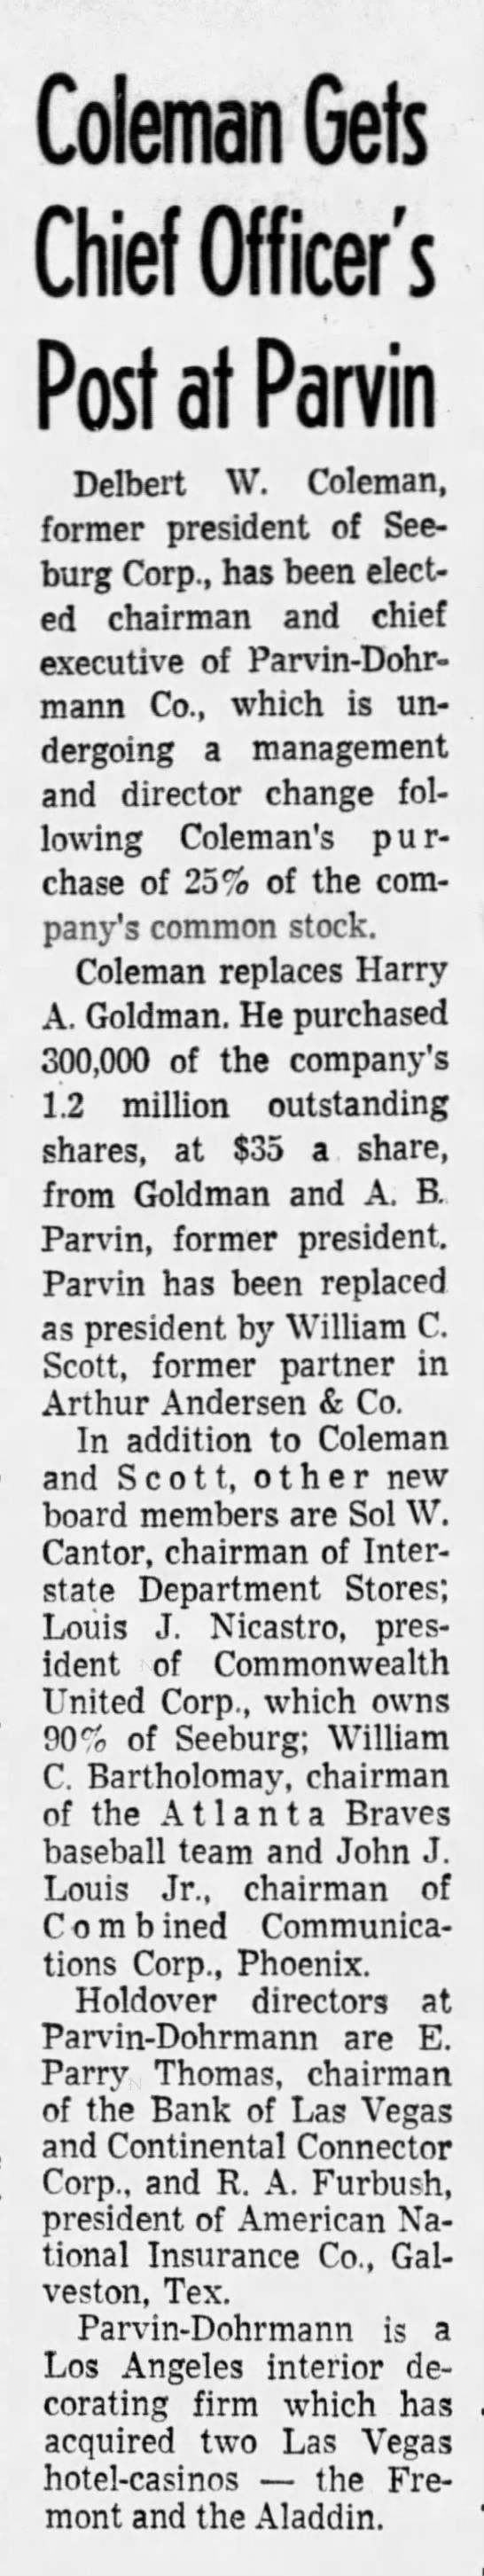 Coleman Gets Chief Officer's Post at Parvin -